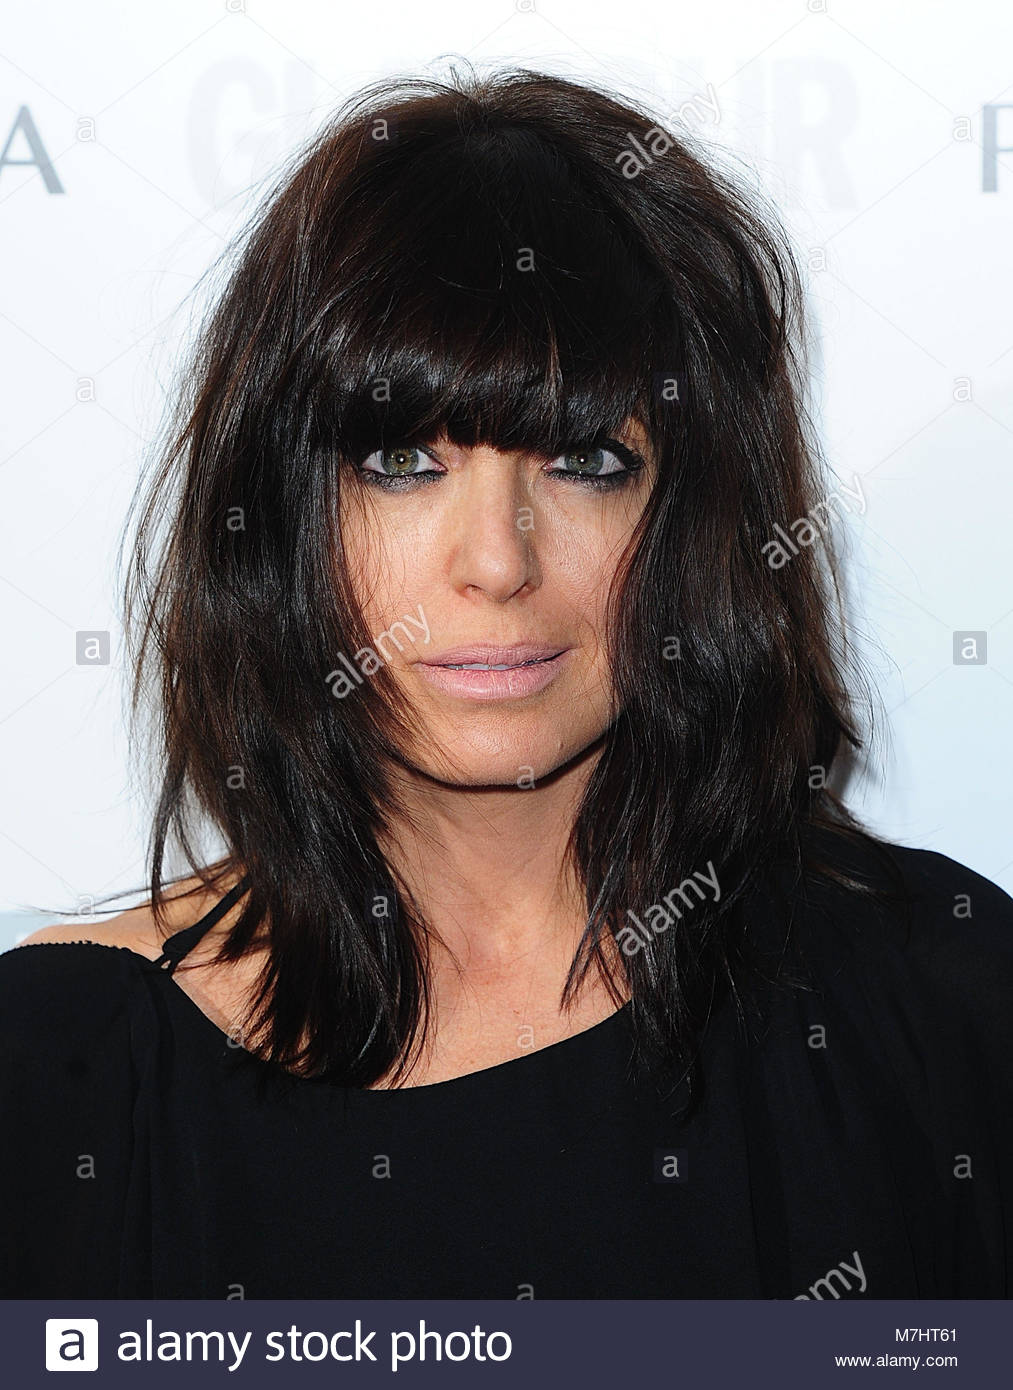 Twitter Instagram Claudia Winkleman naked photo 2017